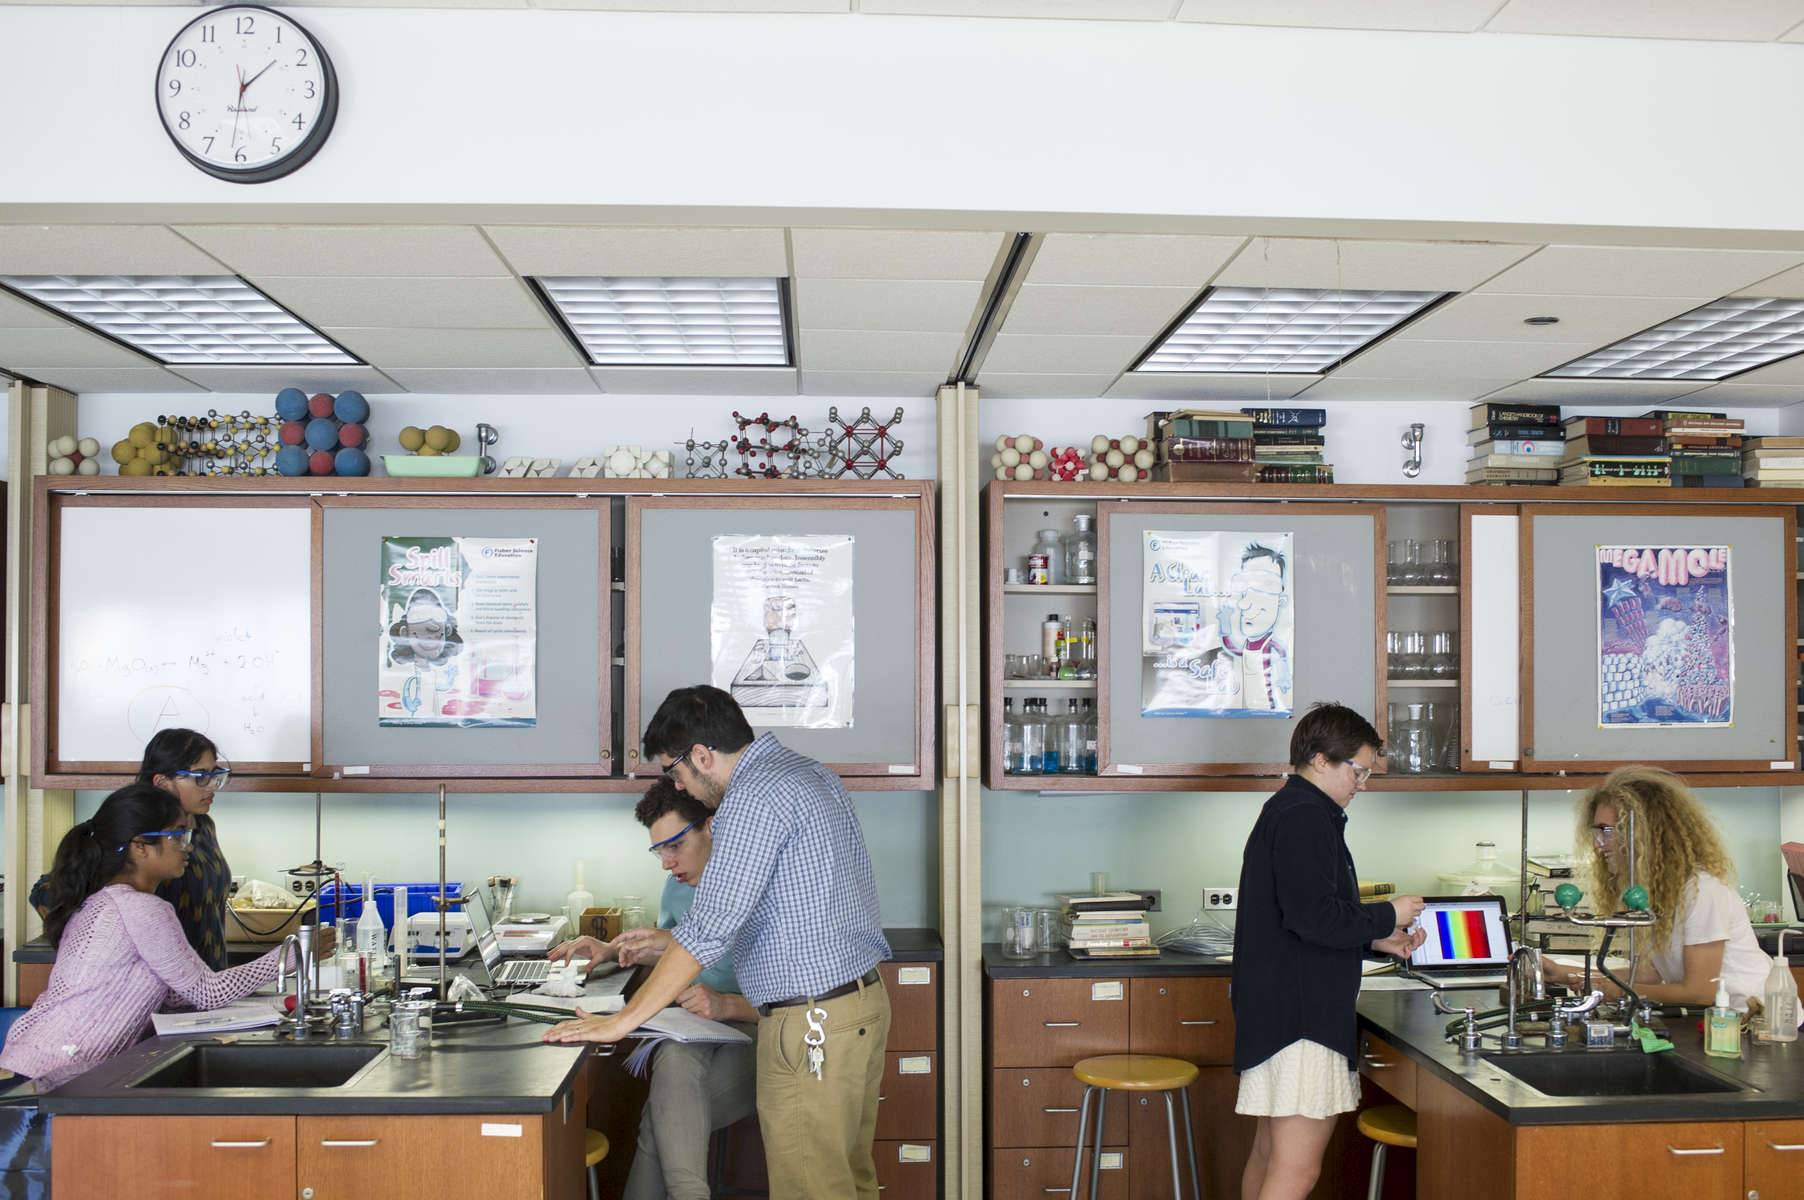 university of chicago laboratory schools high school science high school science teacher dr zachary hund works a student as he analyzes a